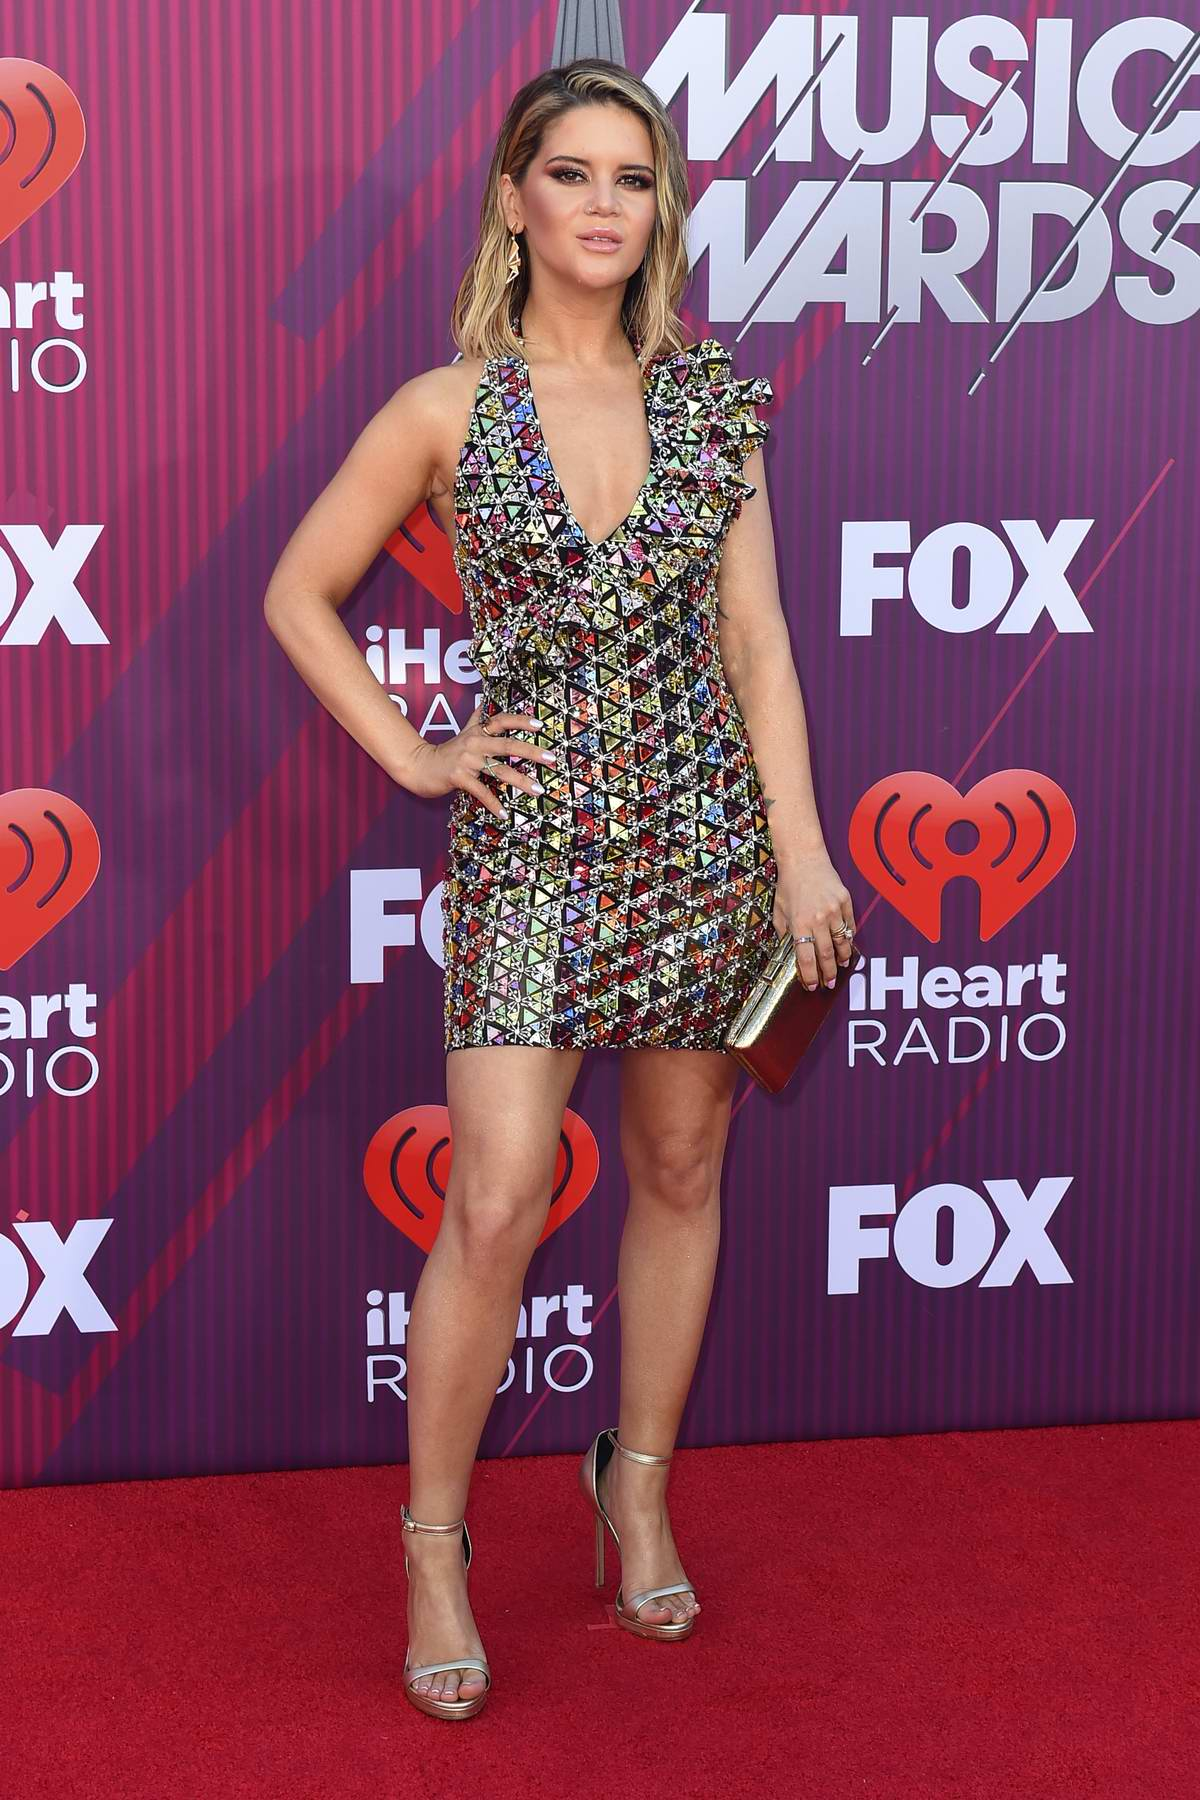 Maren Morris attends the 2019 iHeartRadio Music Awards at Microsoft Theater in Los Angeles